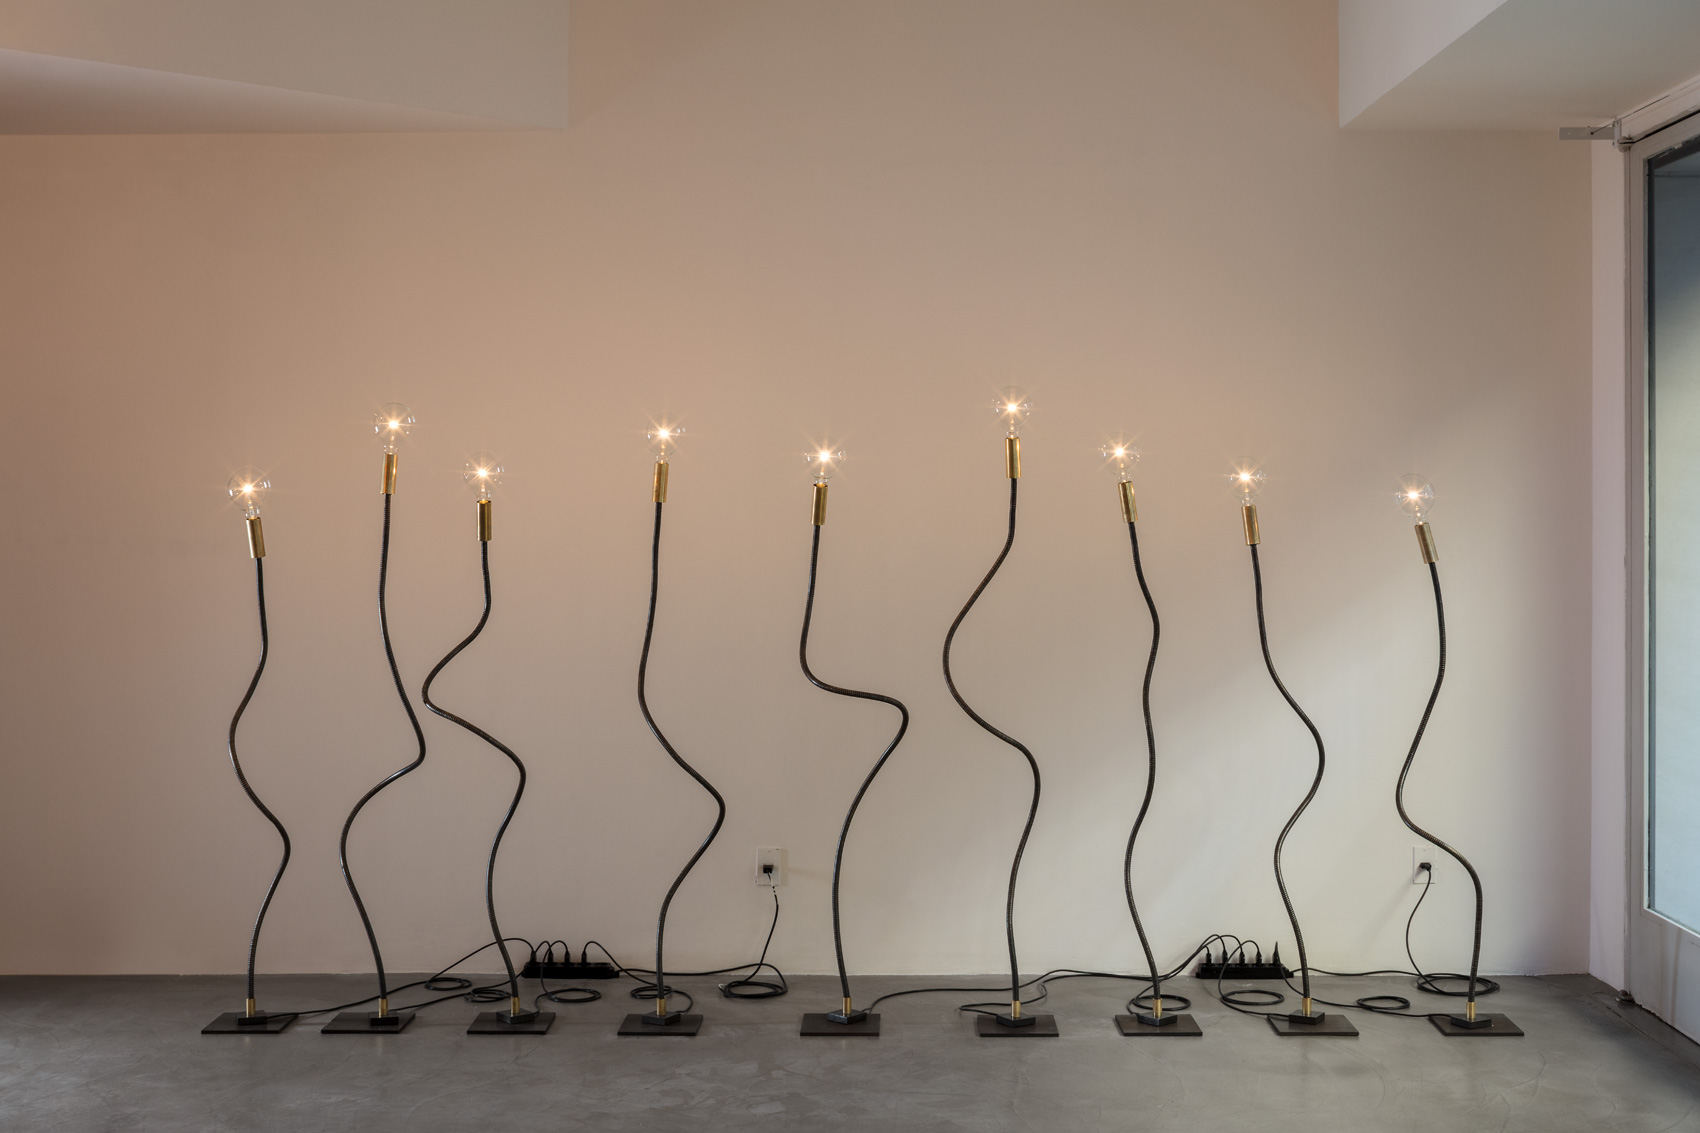 Lighting installation by Enzo Catellani